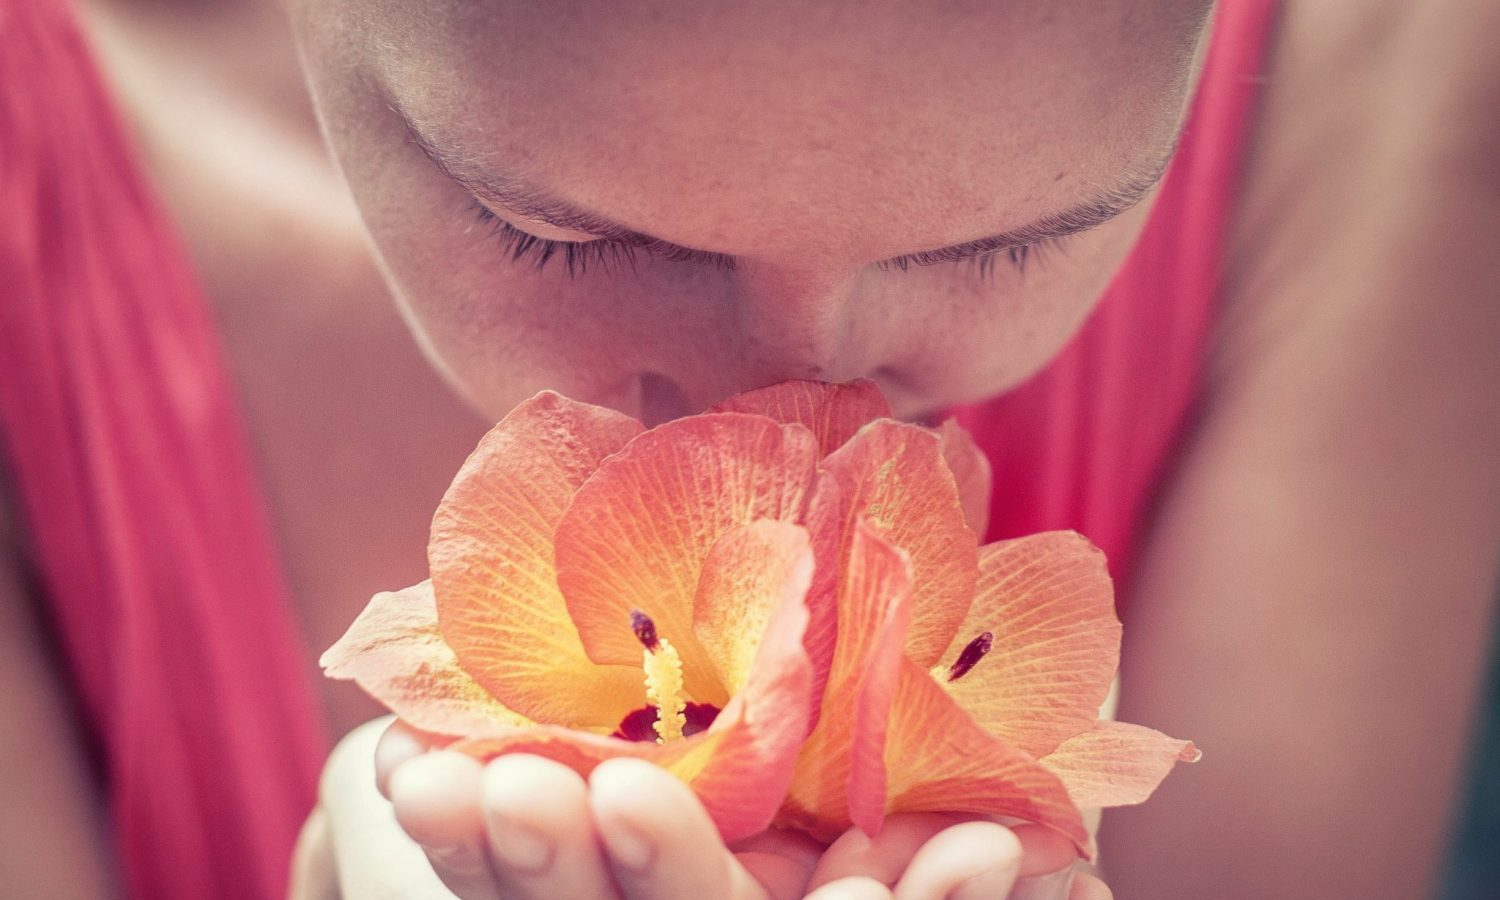 People Who've Lost Their Sense Of Smell Are Coping By Following This Therapy